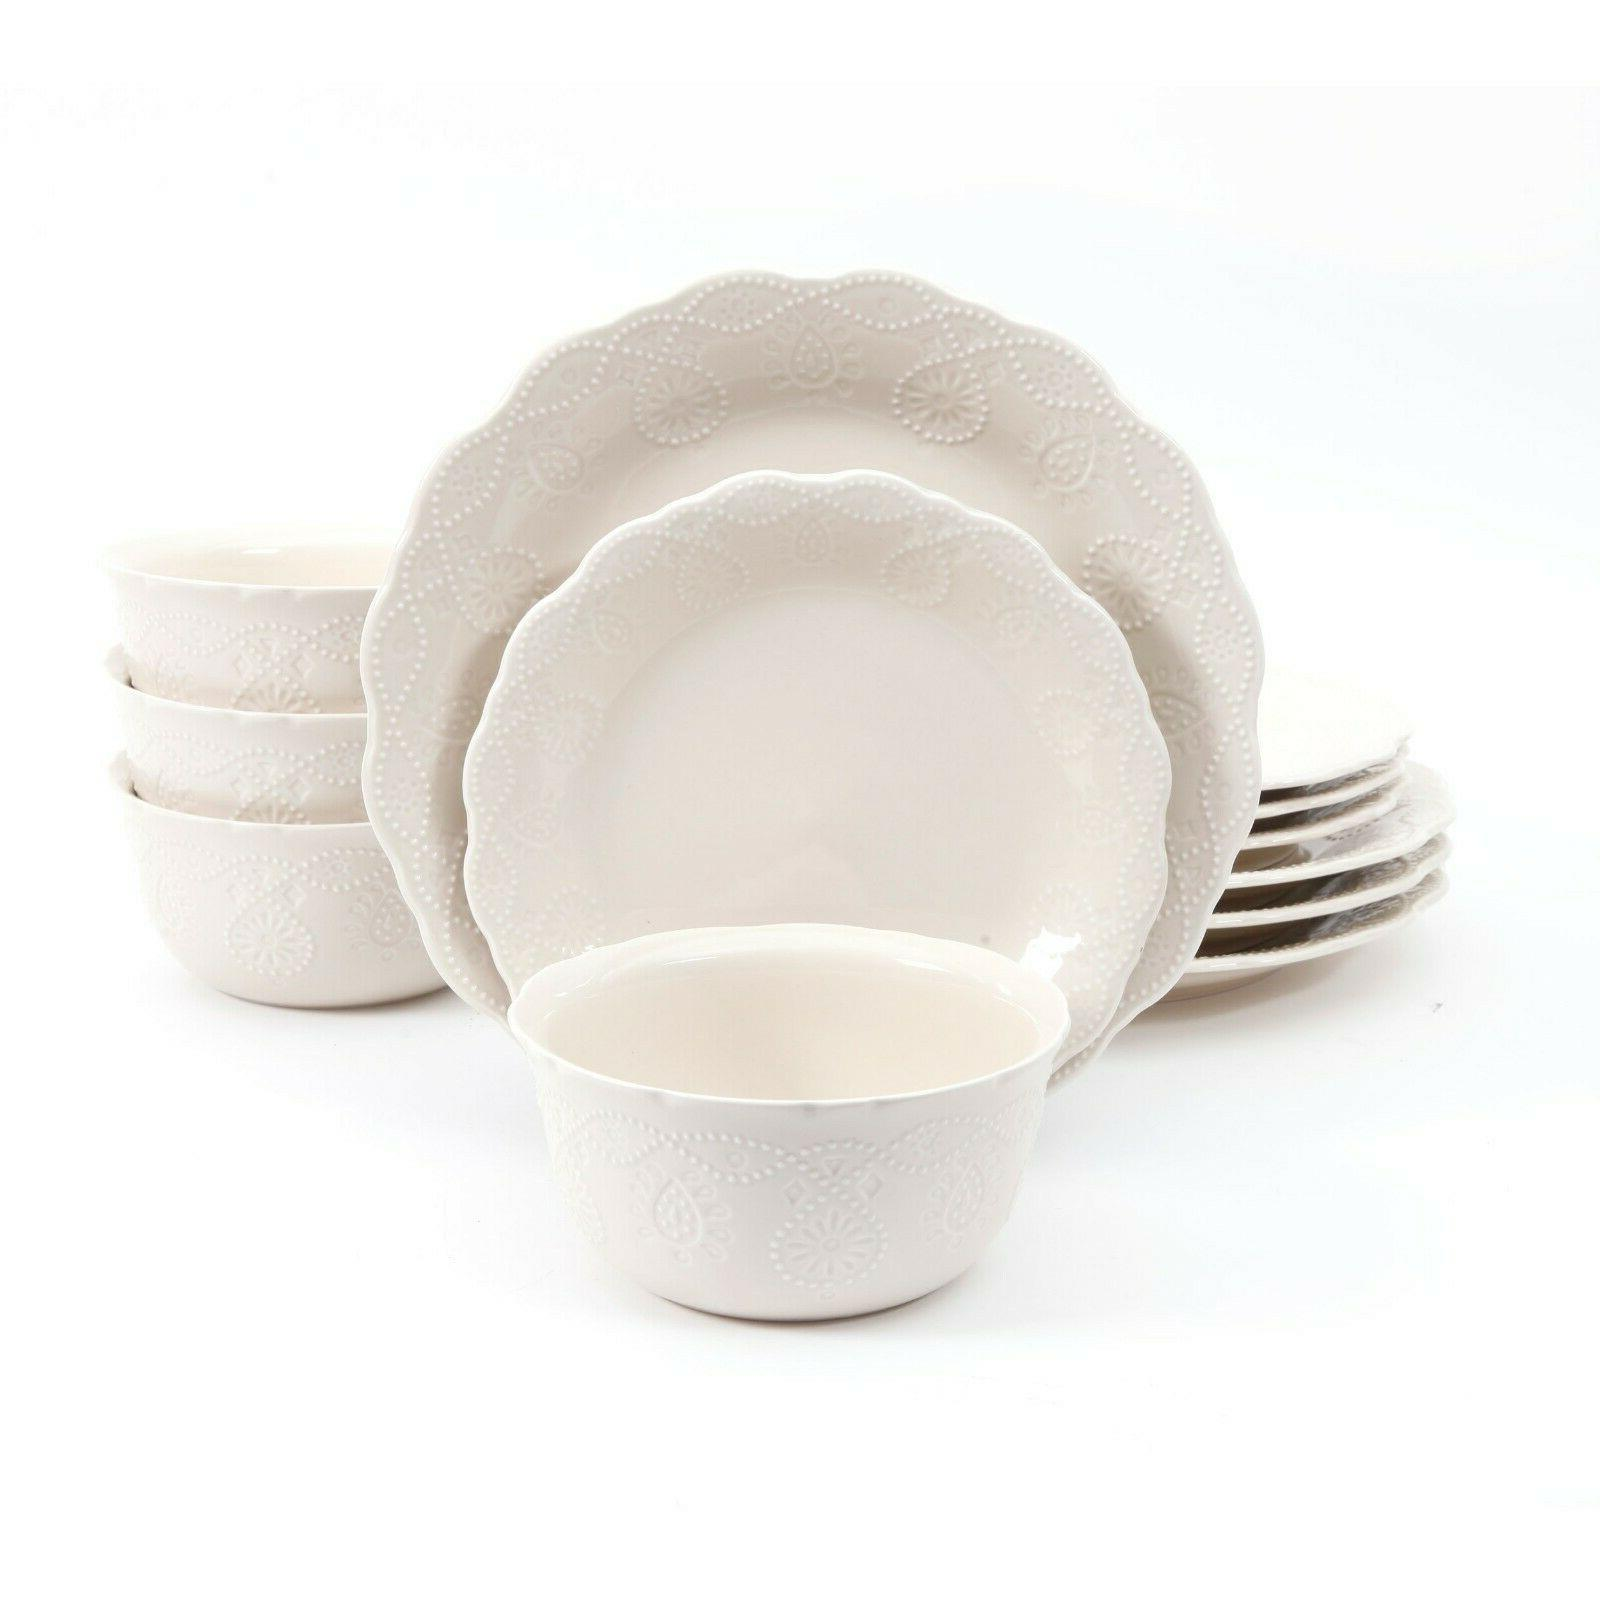 The Pioneer Woman Cowgirl Lace 12-Piece Dinnerware Set + CHO